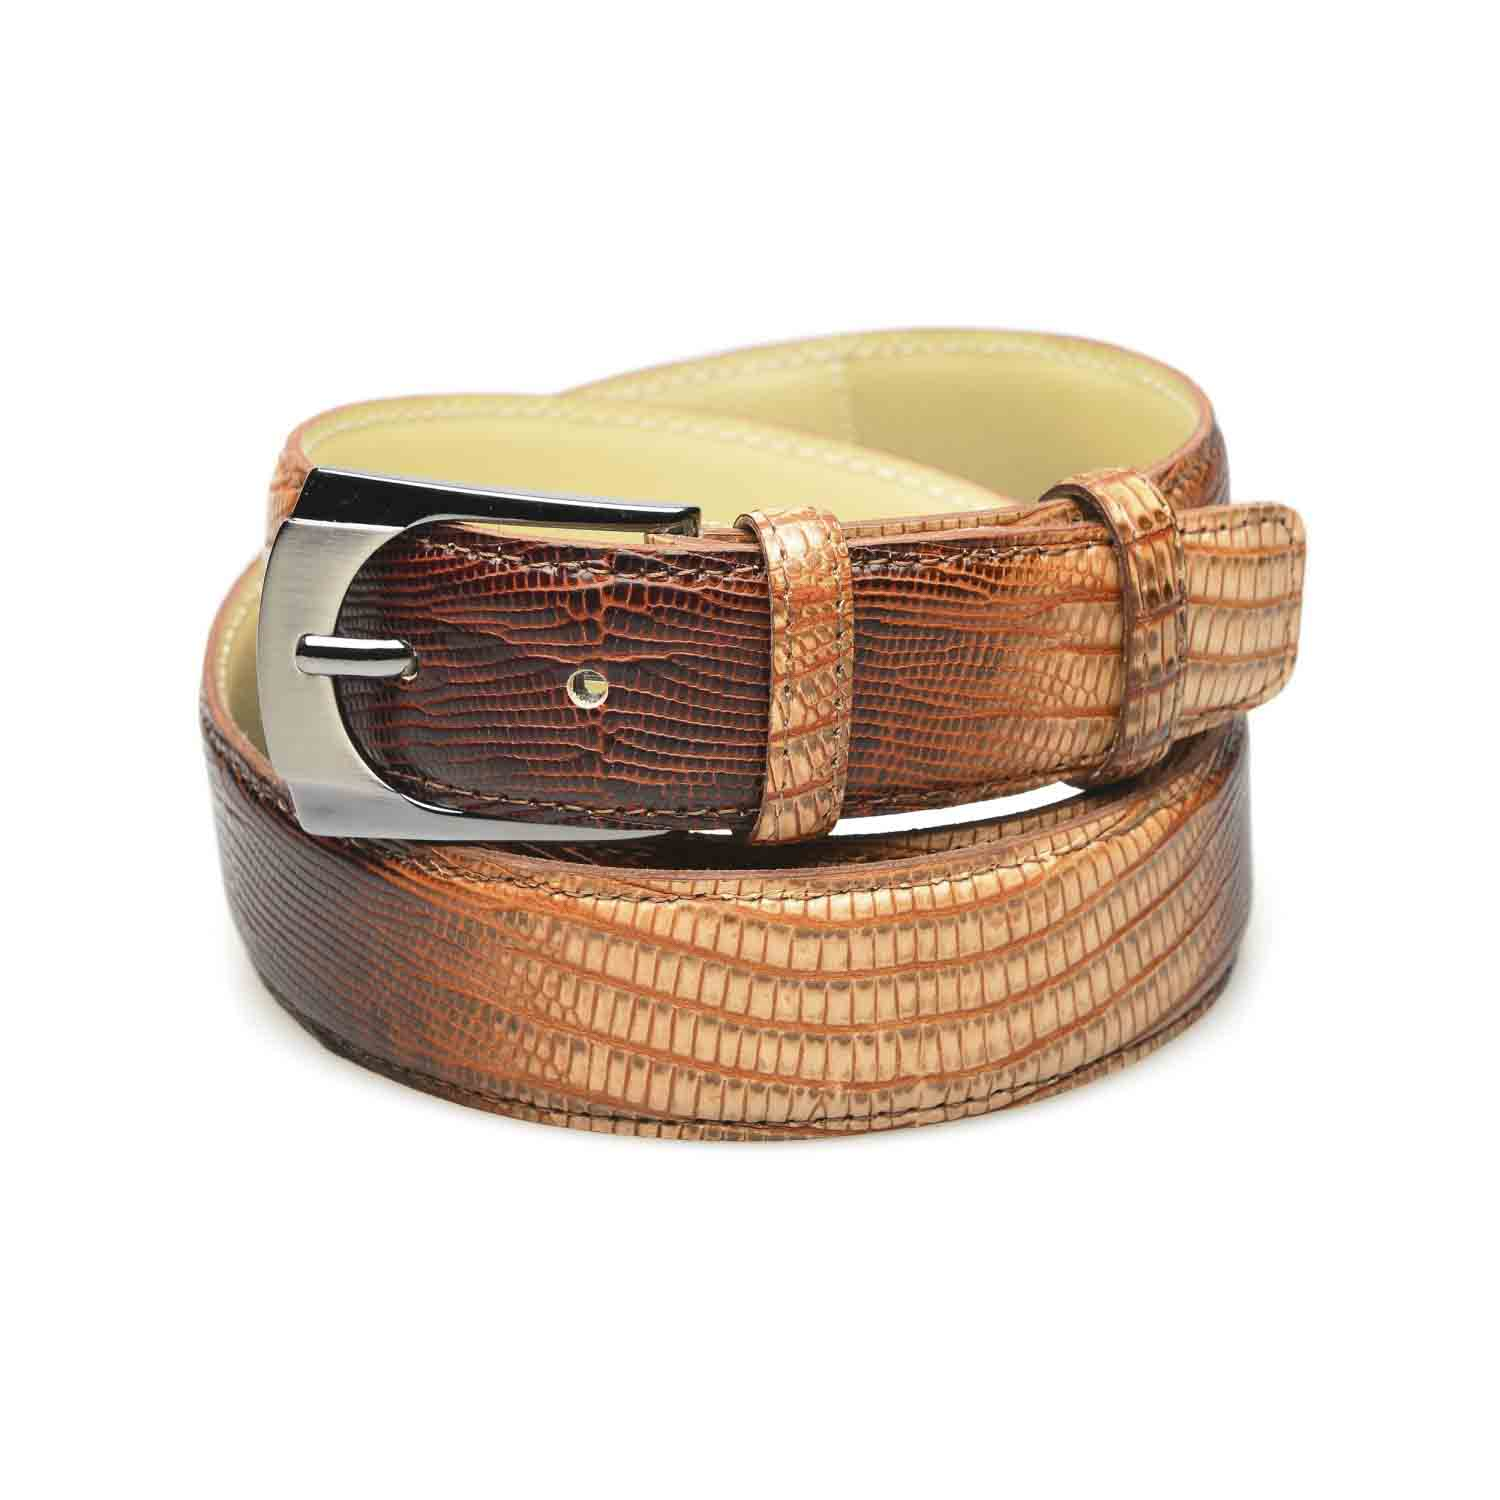 riem-cognac-kualla-white-wood-safari-025500369